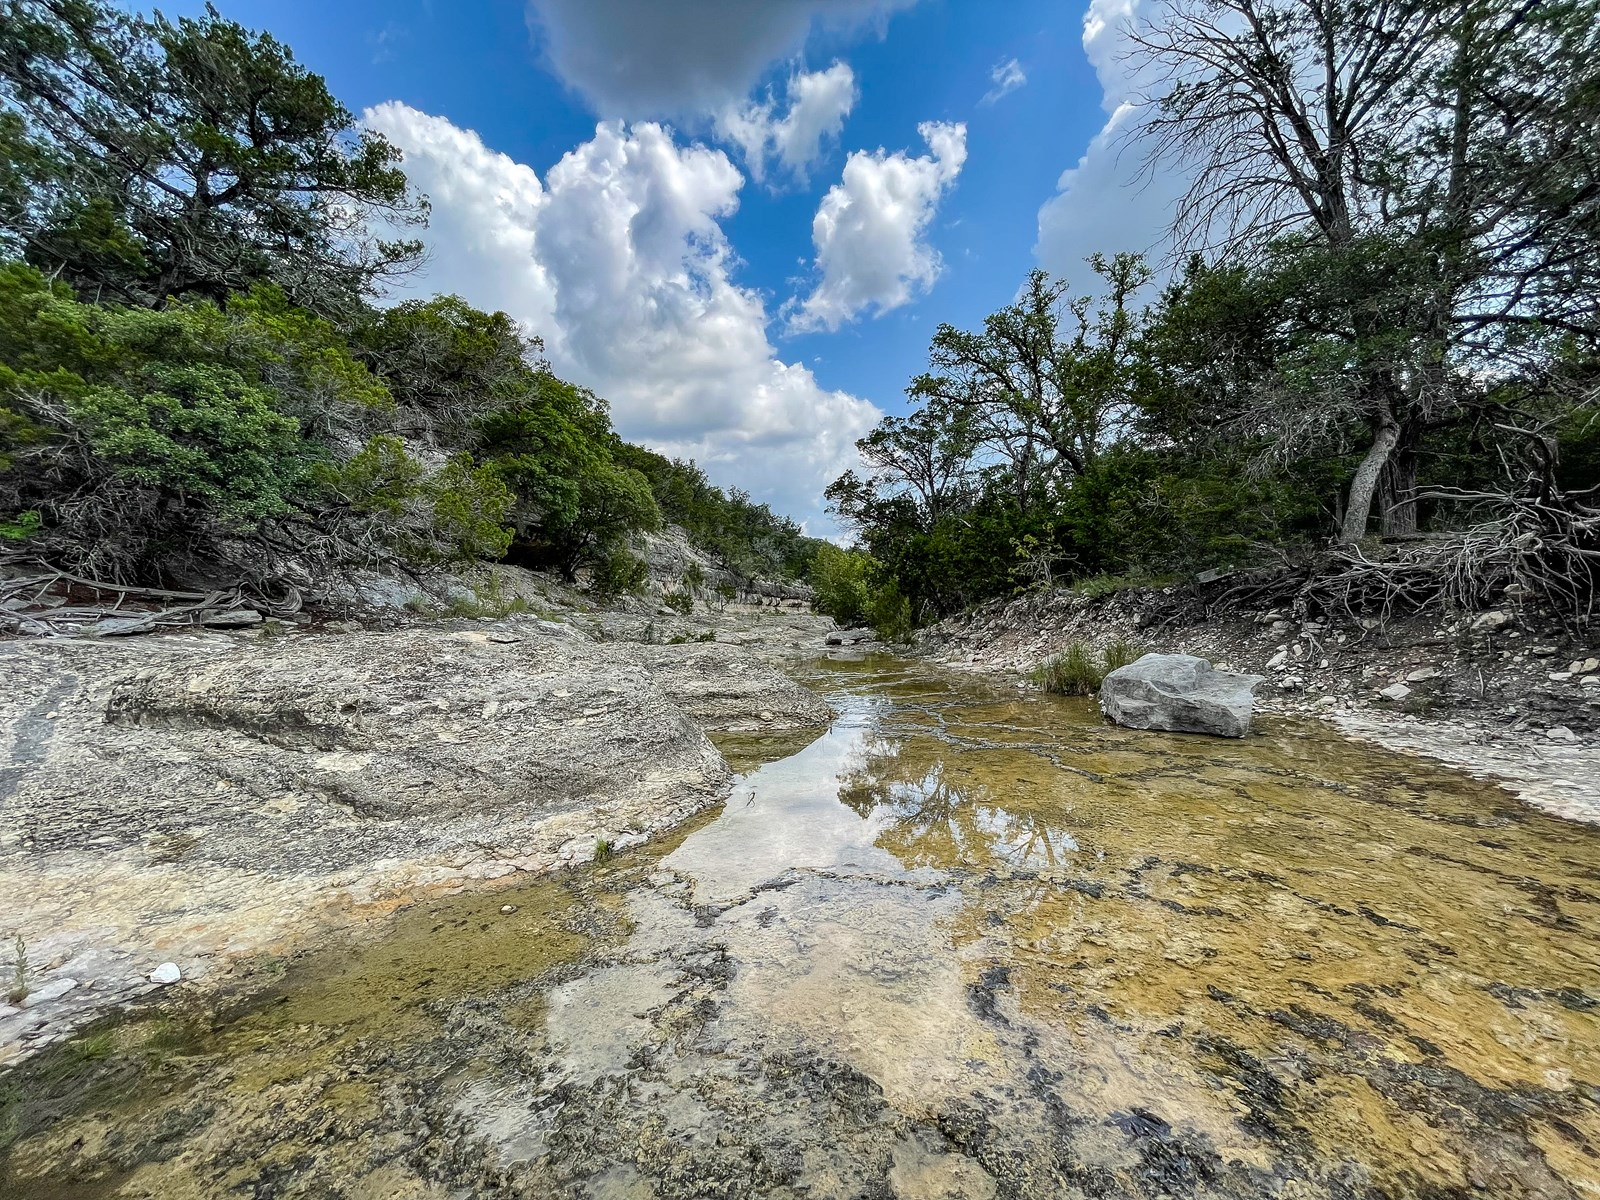 Texas Hunting Land and Ranch house for Sale Kimble County TX